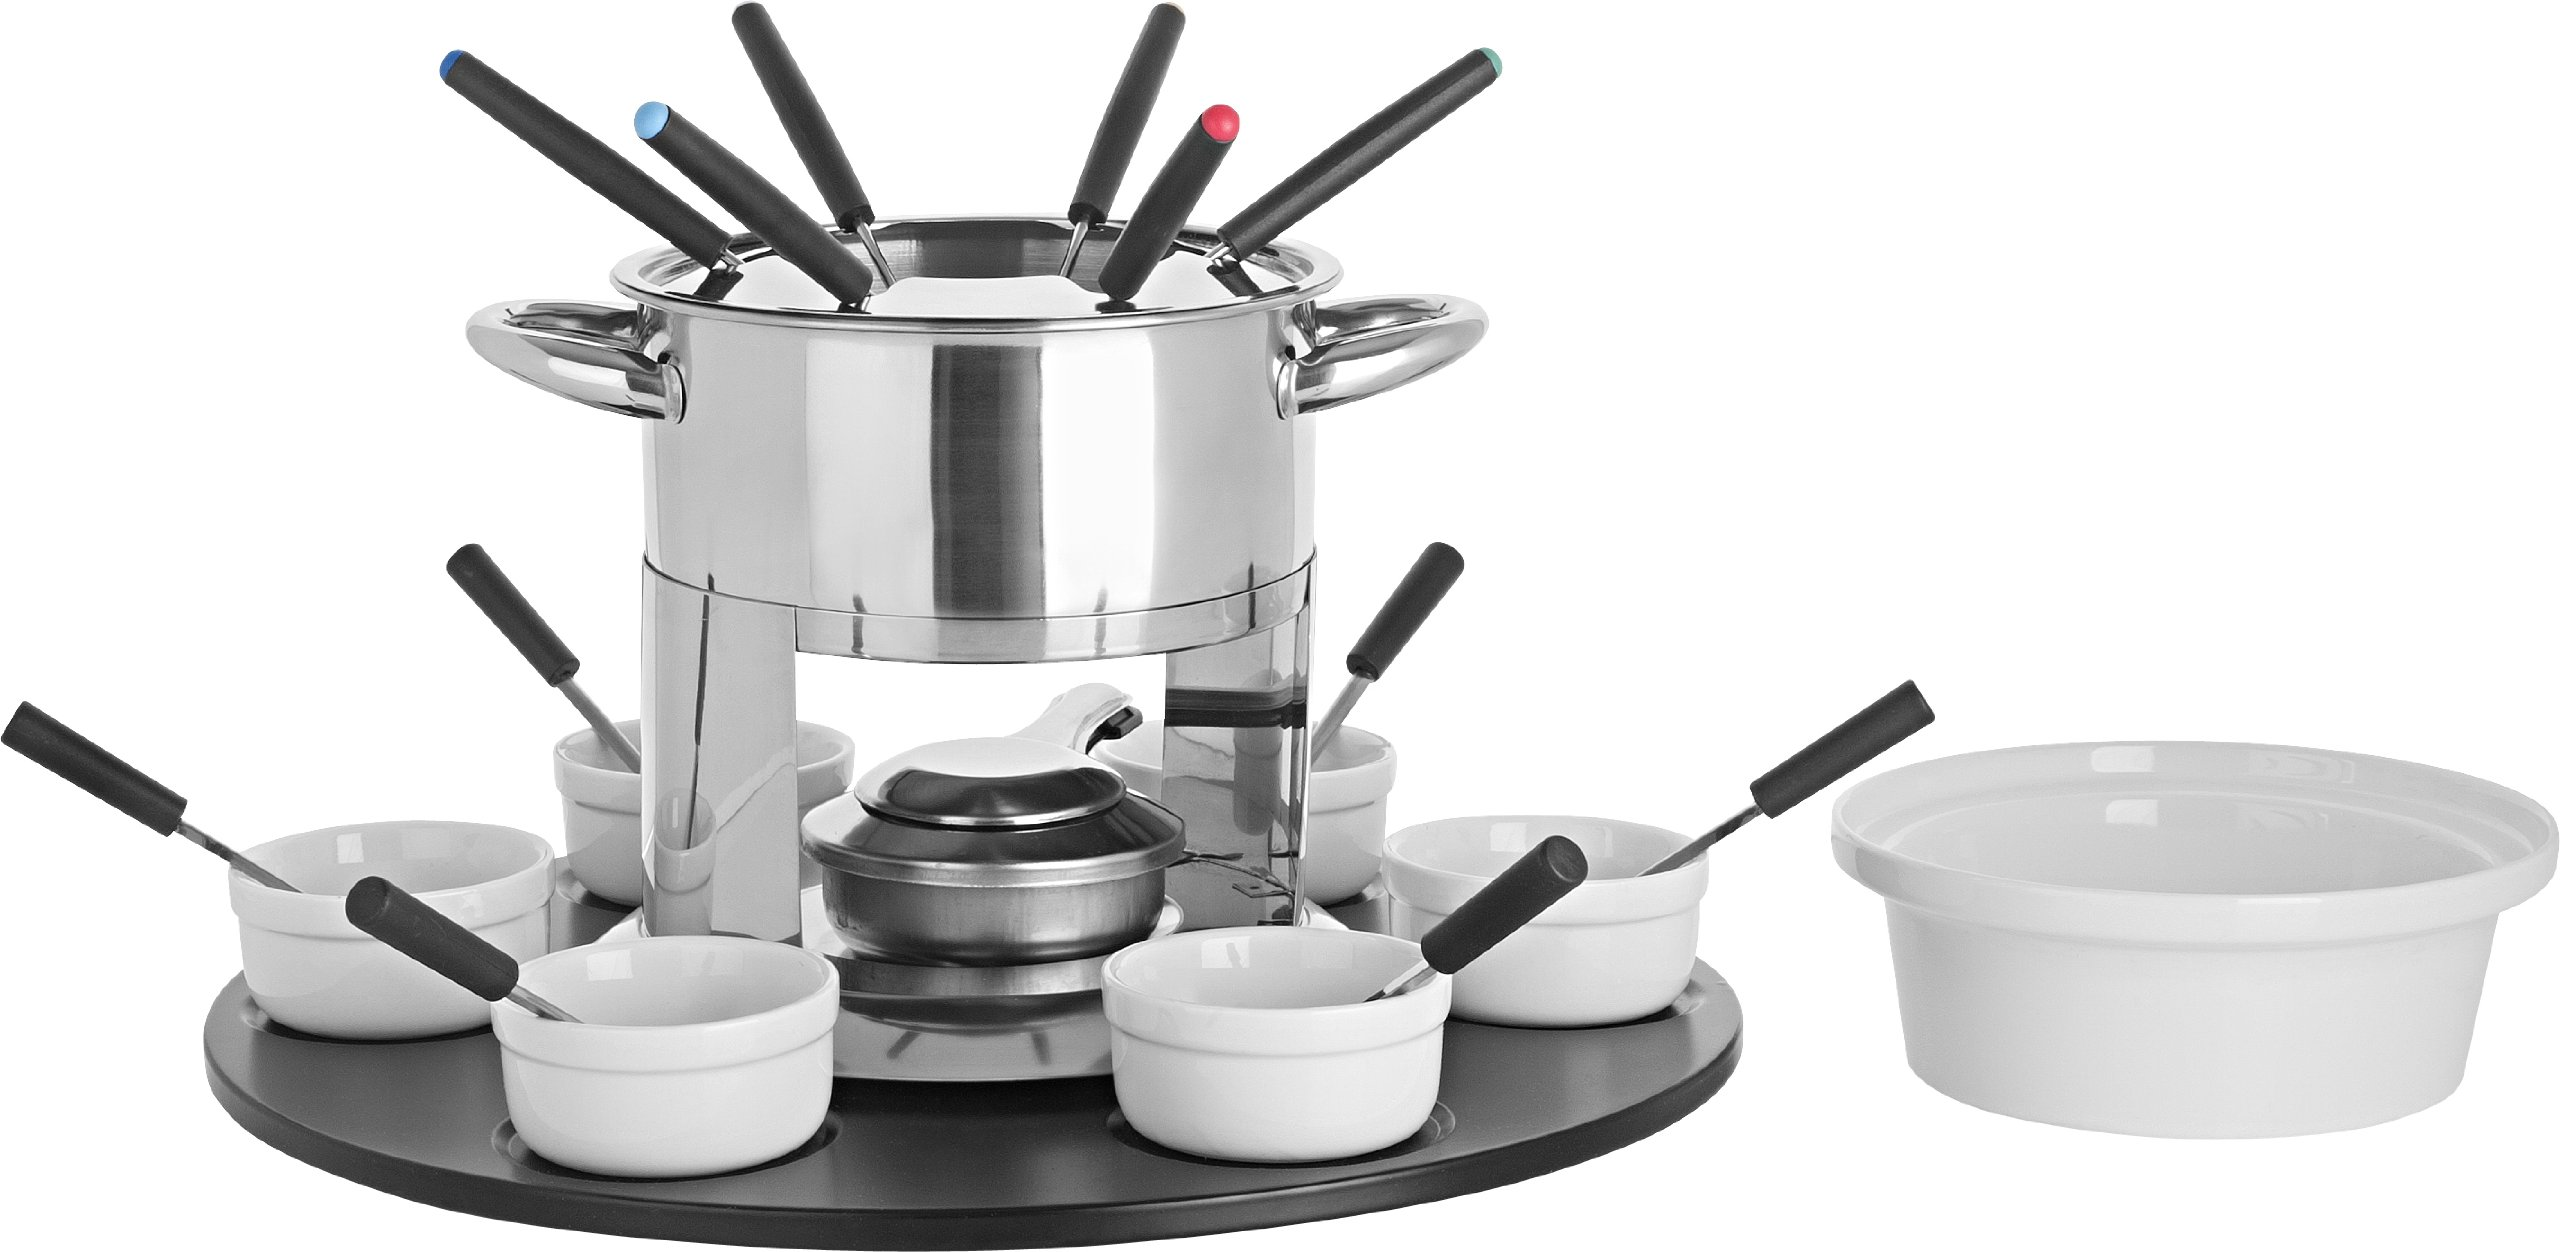 Trudeau Home Presence Laila 44 Ounce Stainless Steel Fondue Set with Double Boiler Inset and Laze Susan - 24 Piece by Trudeau Home Presence